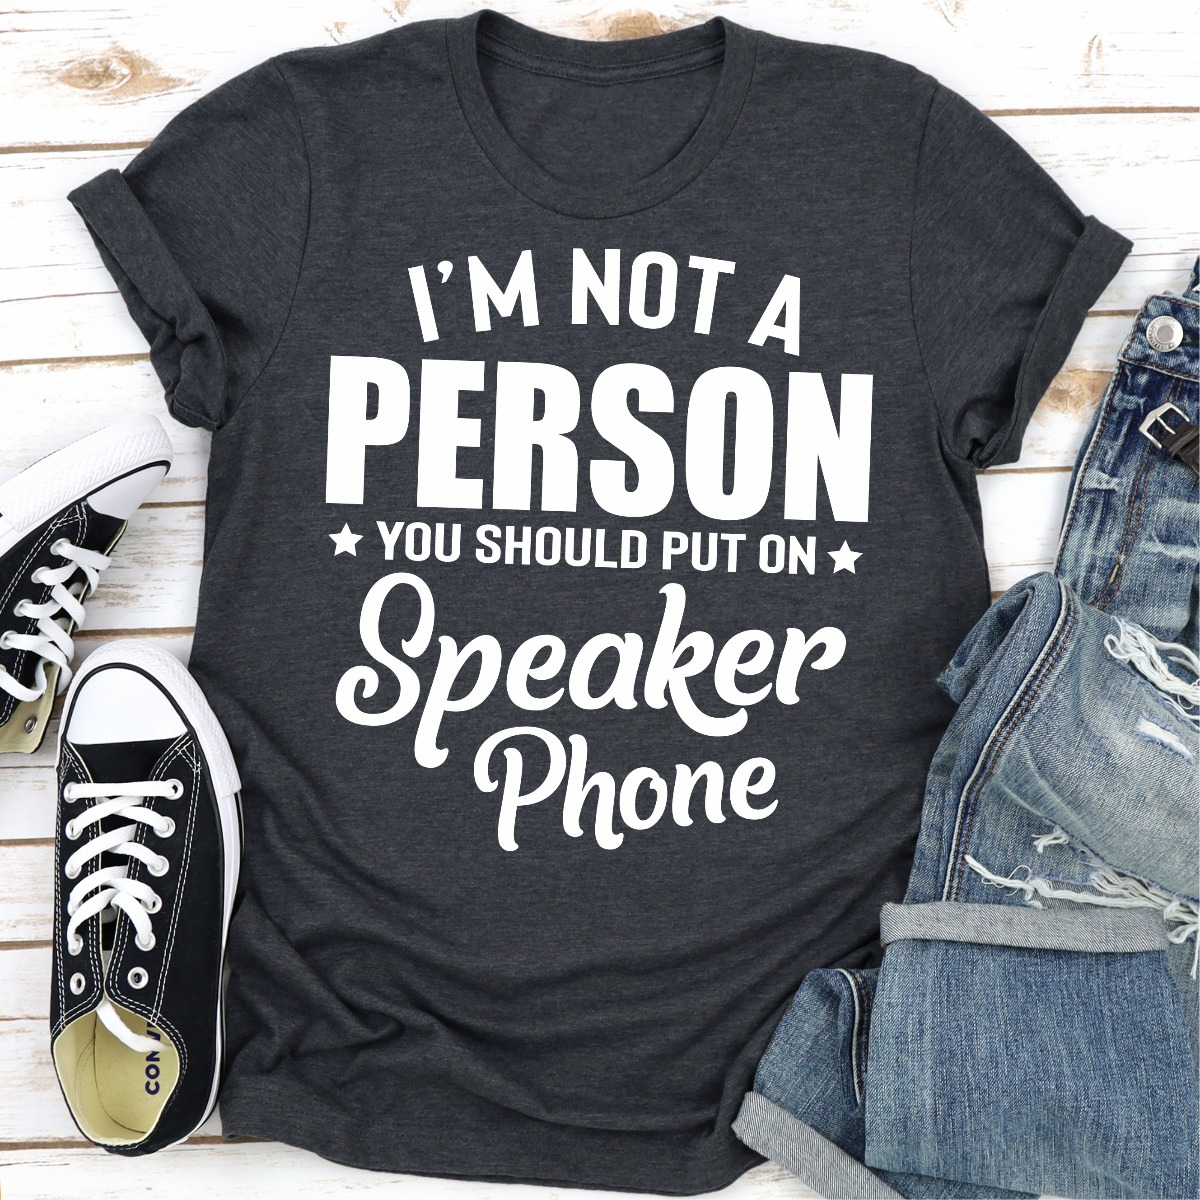 I'm Not A Person You Should Put On Speaker Phone (Dark Heather / 2Xl)